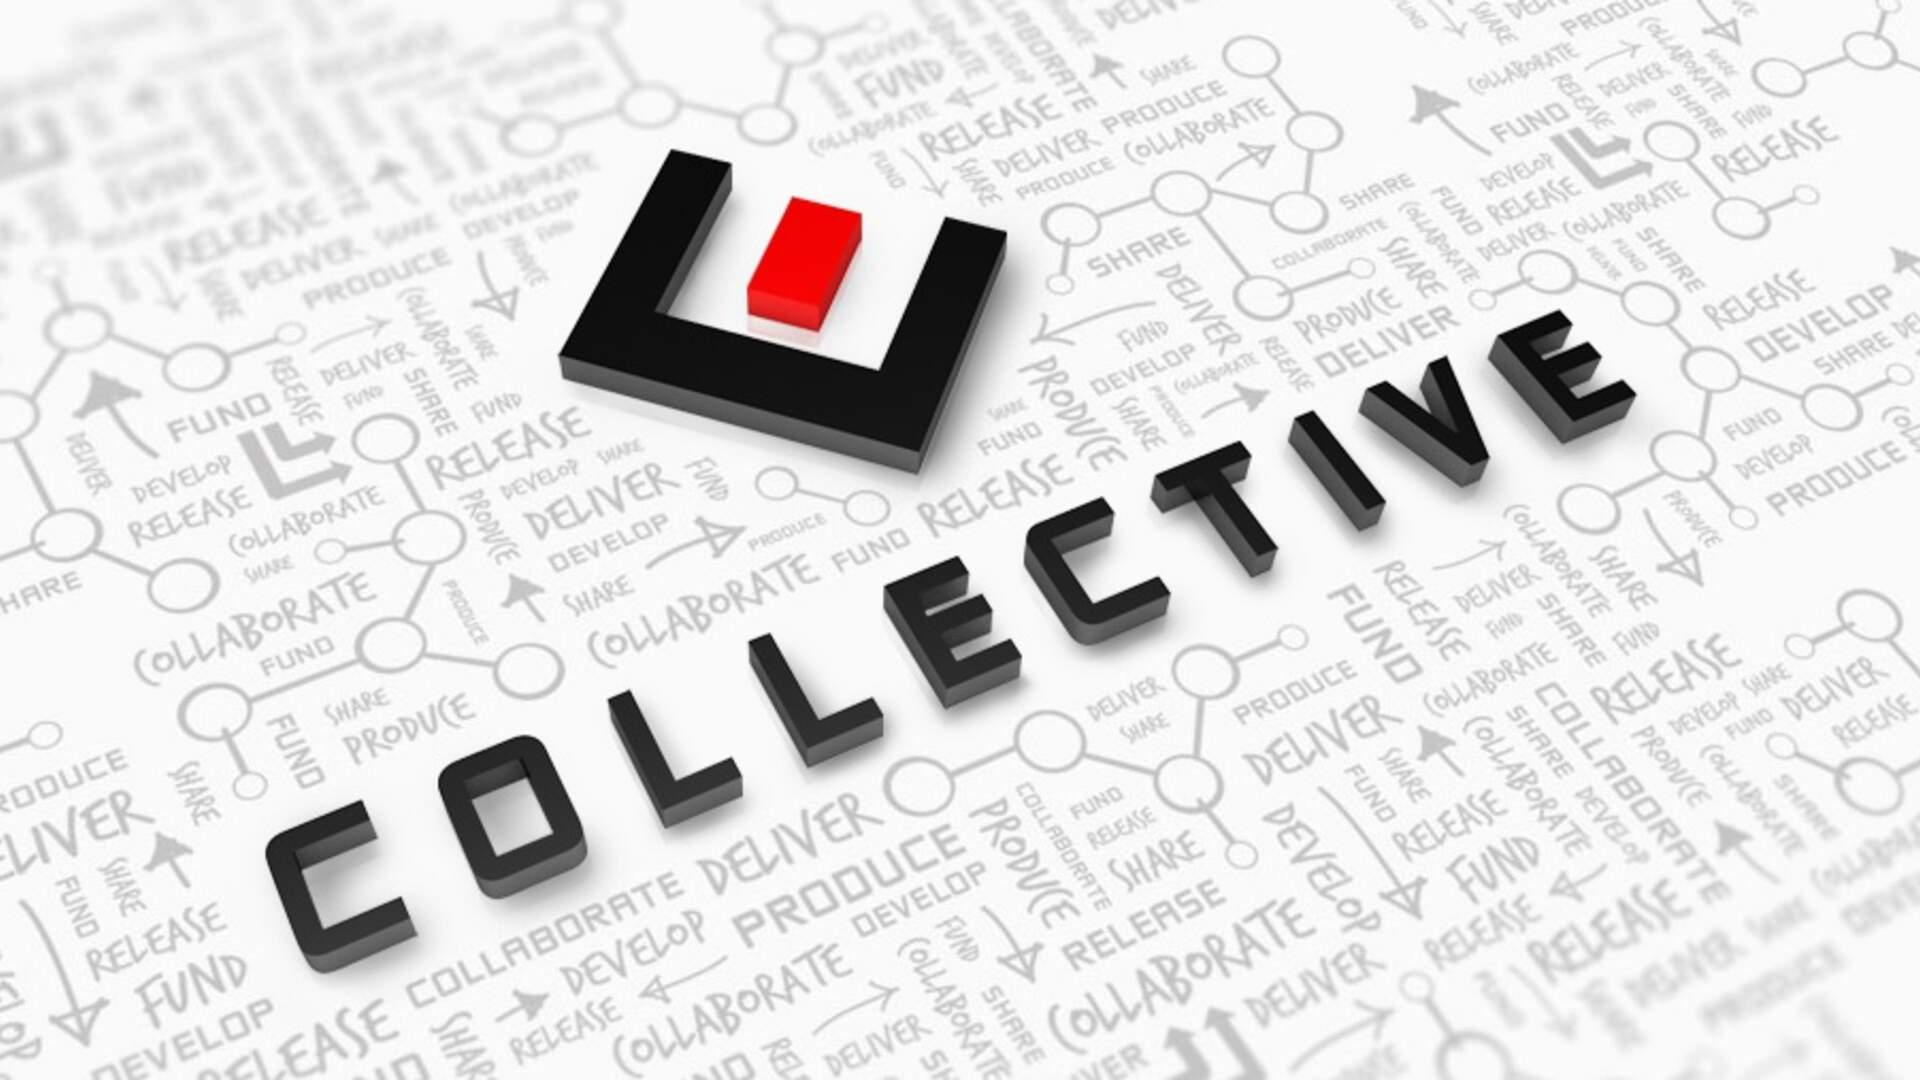 Square Enix and IndieGogo Launch the Crowd-Funding Collective